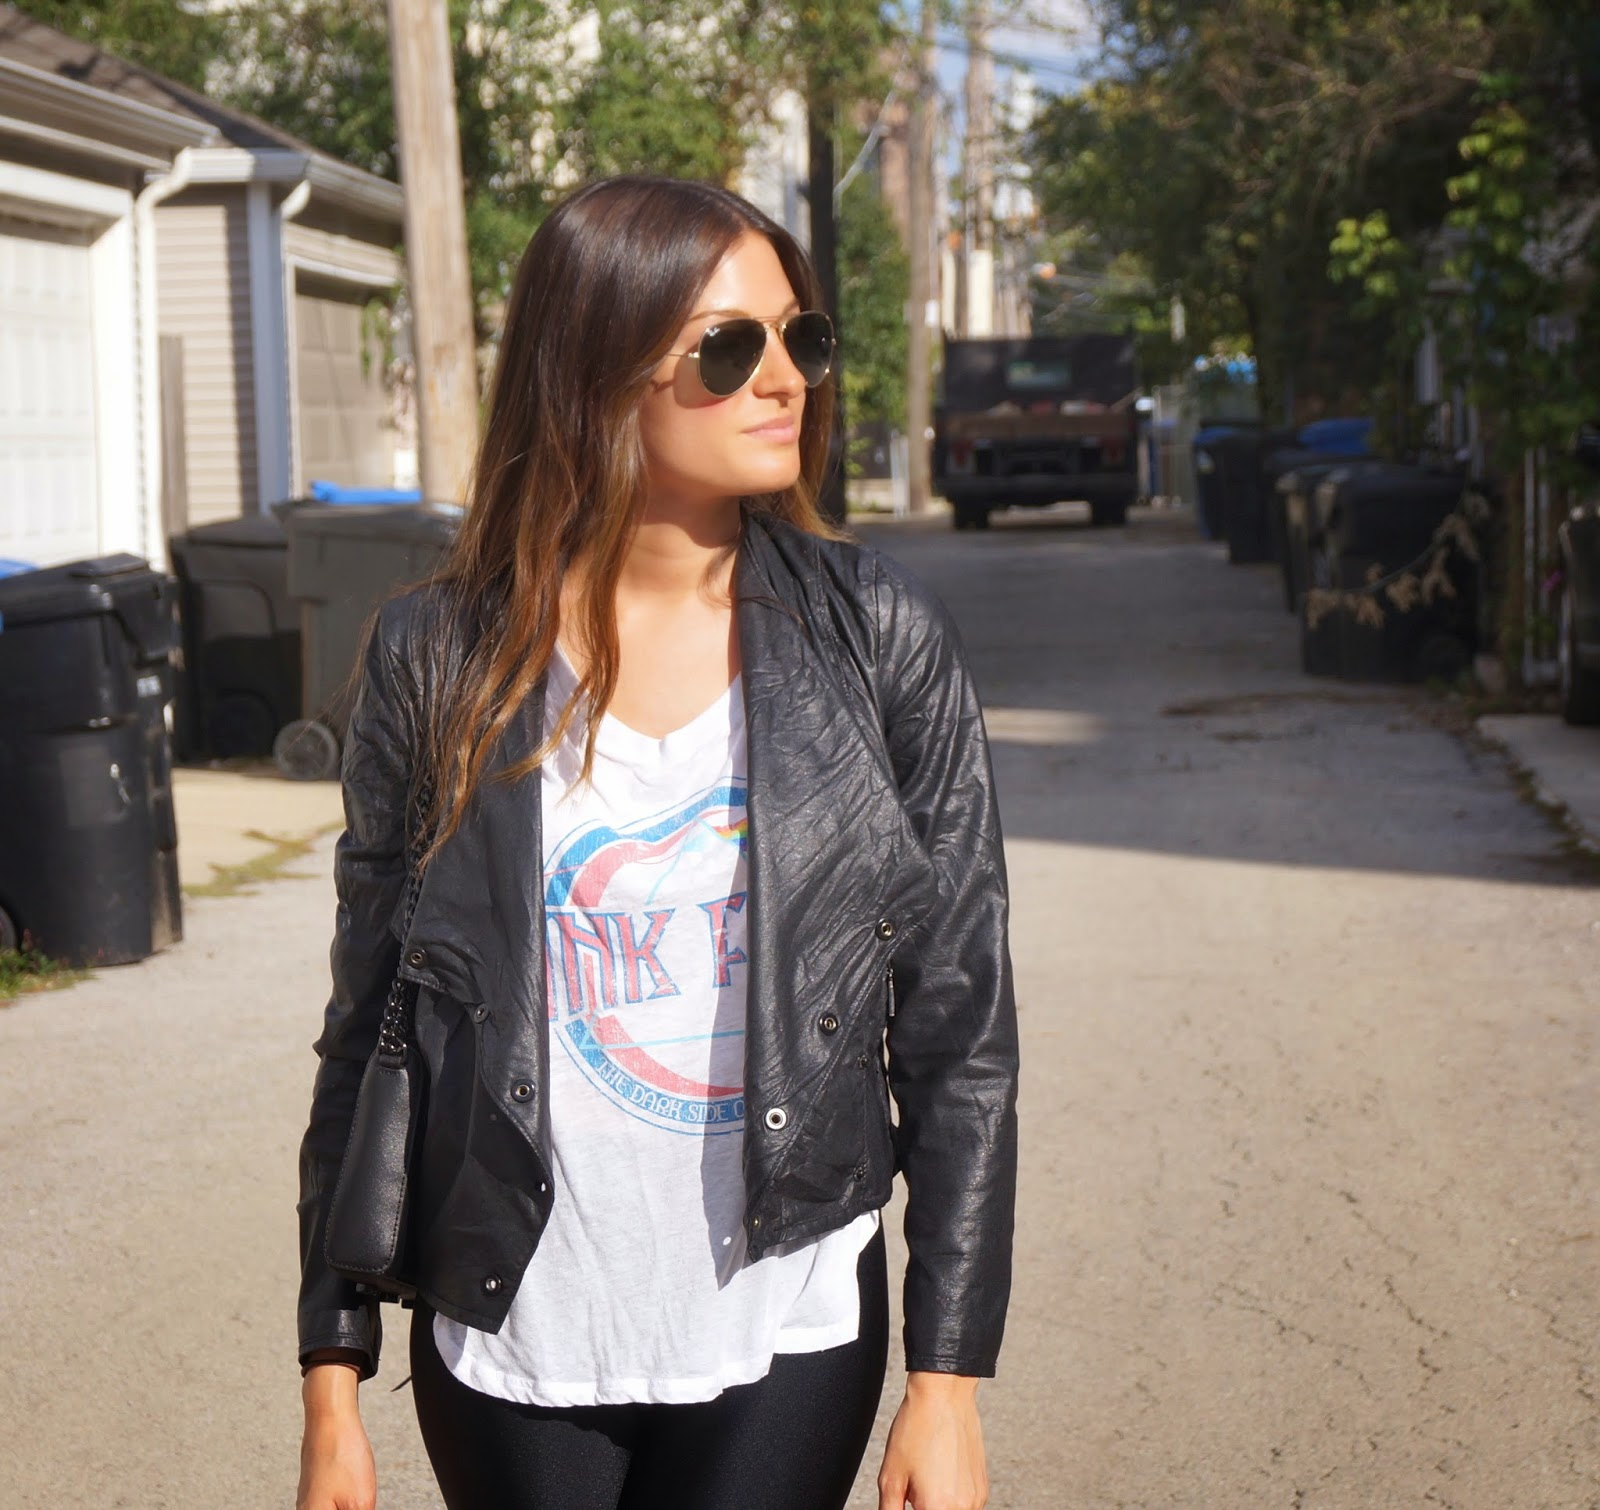 graphic tee + leather jacket